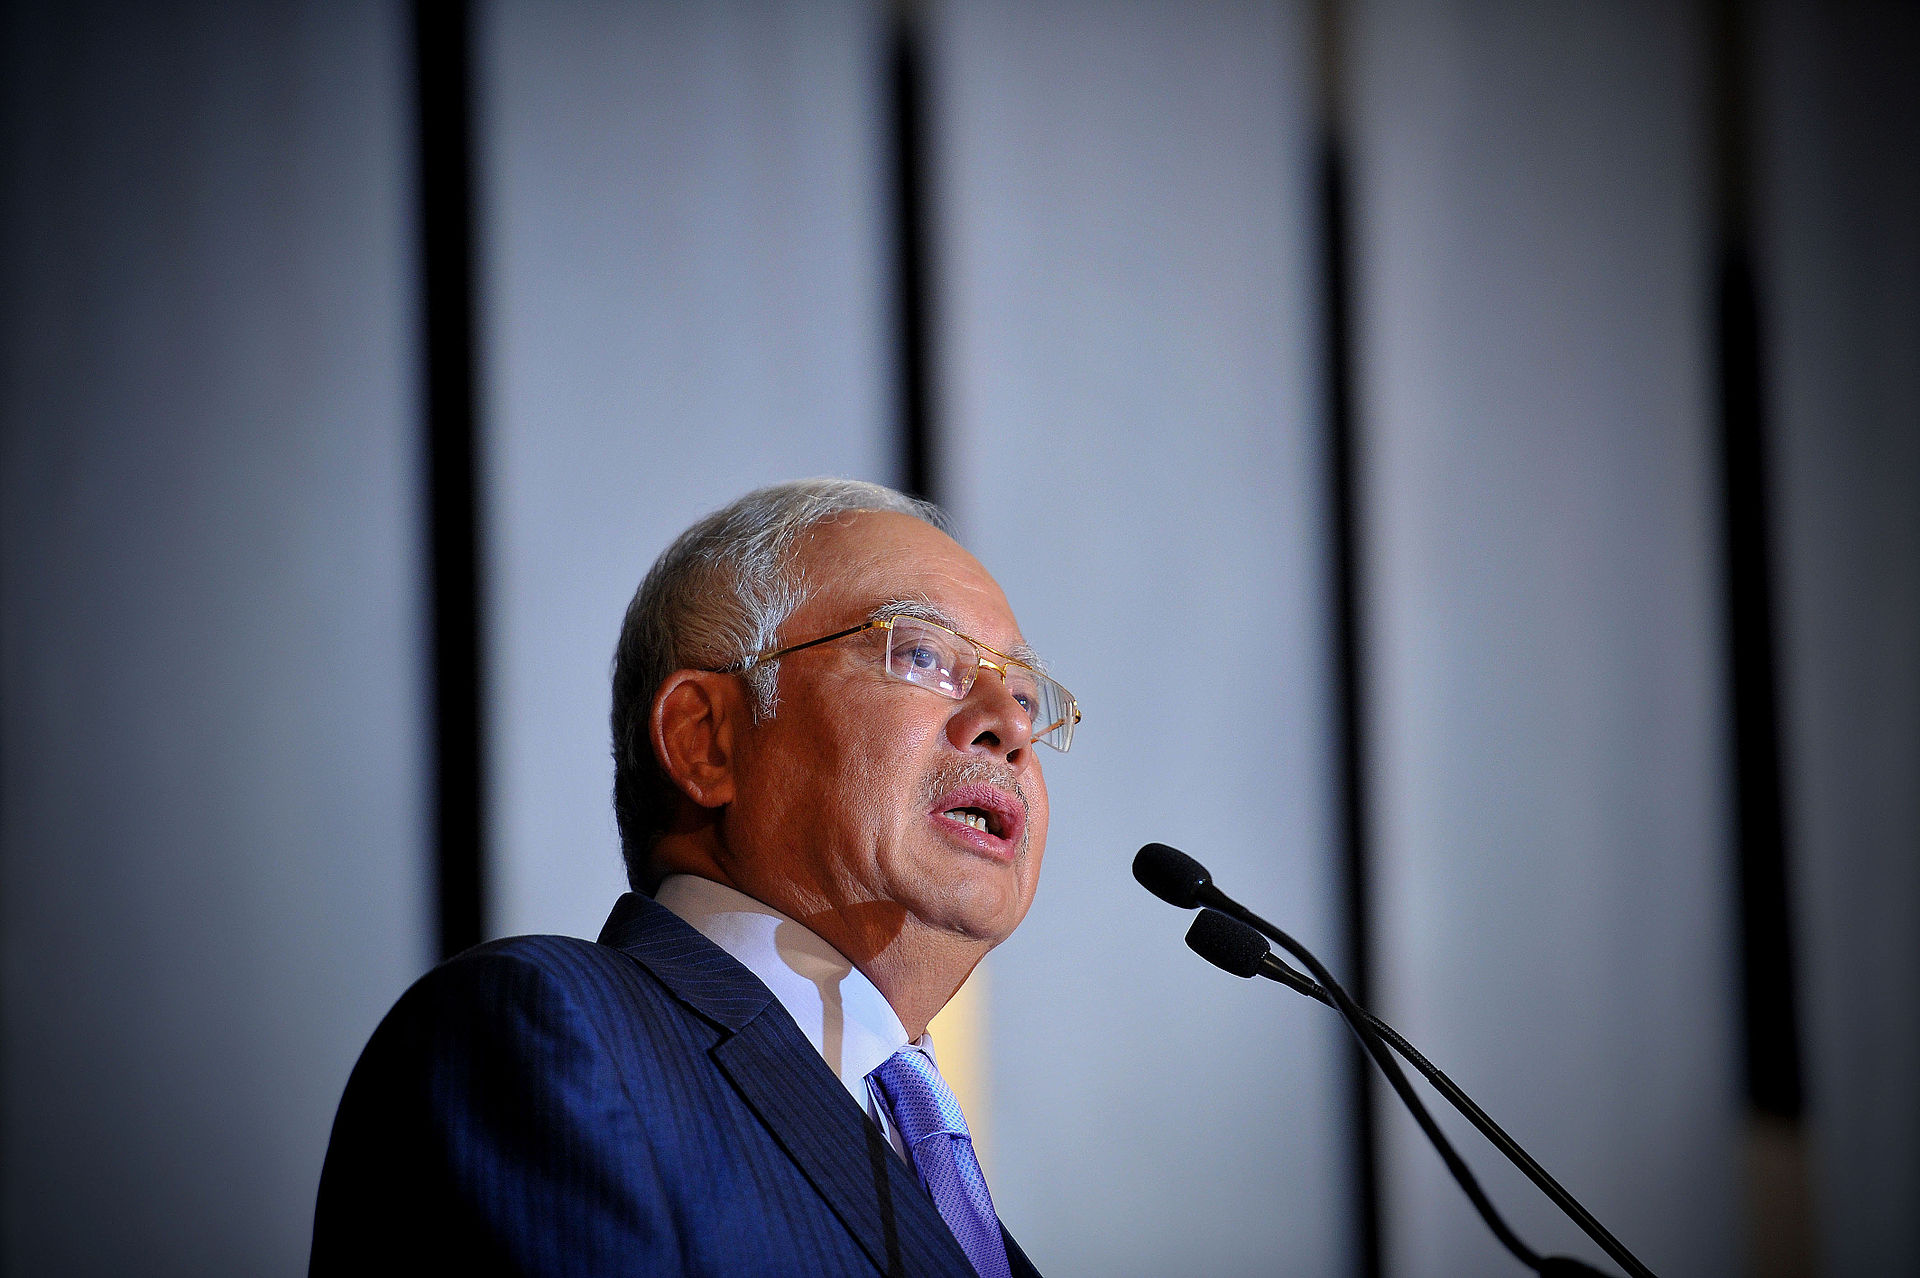 Additional charges leveled against former Malaysia PM